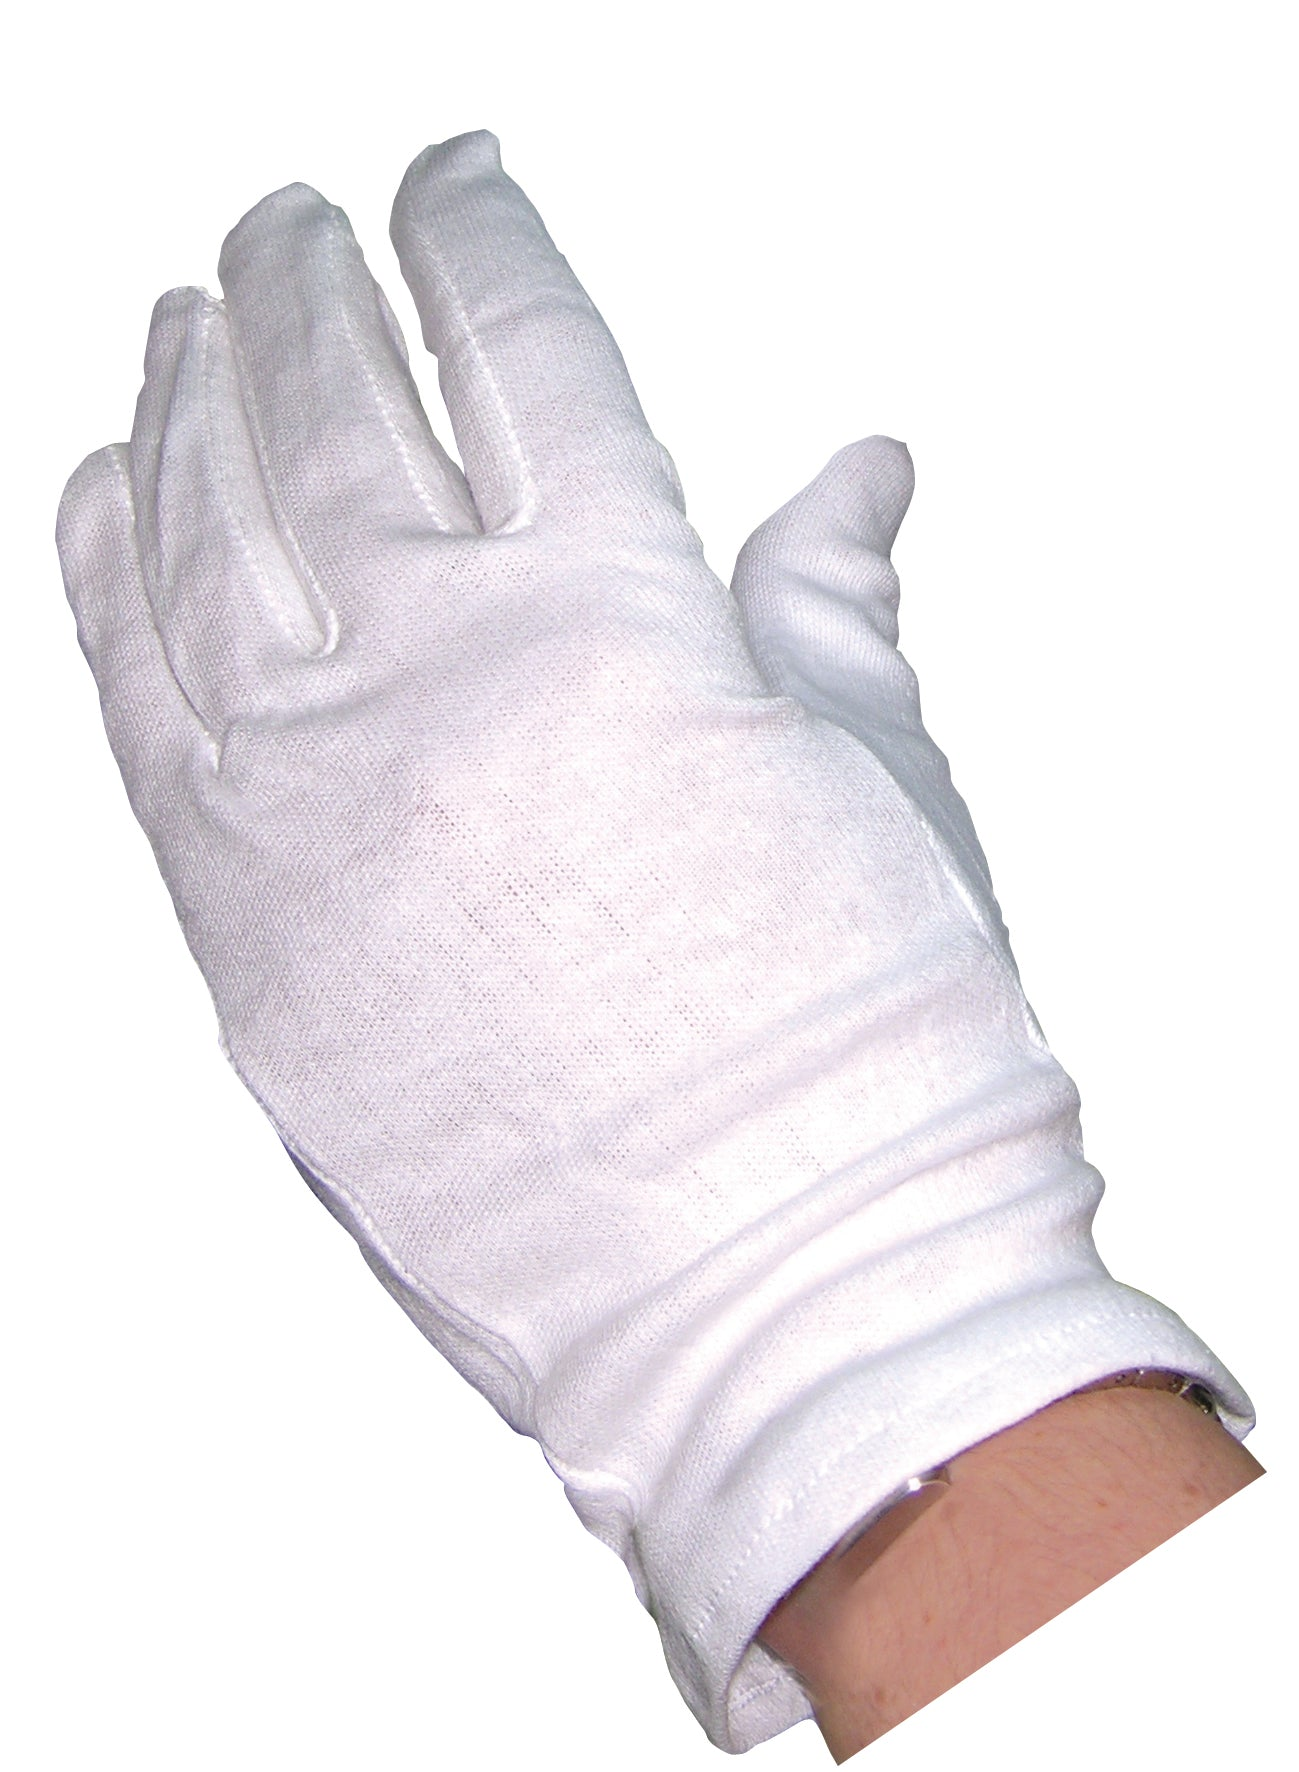 White Cotton Gloves (10 Pairs)